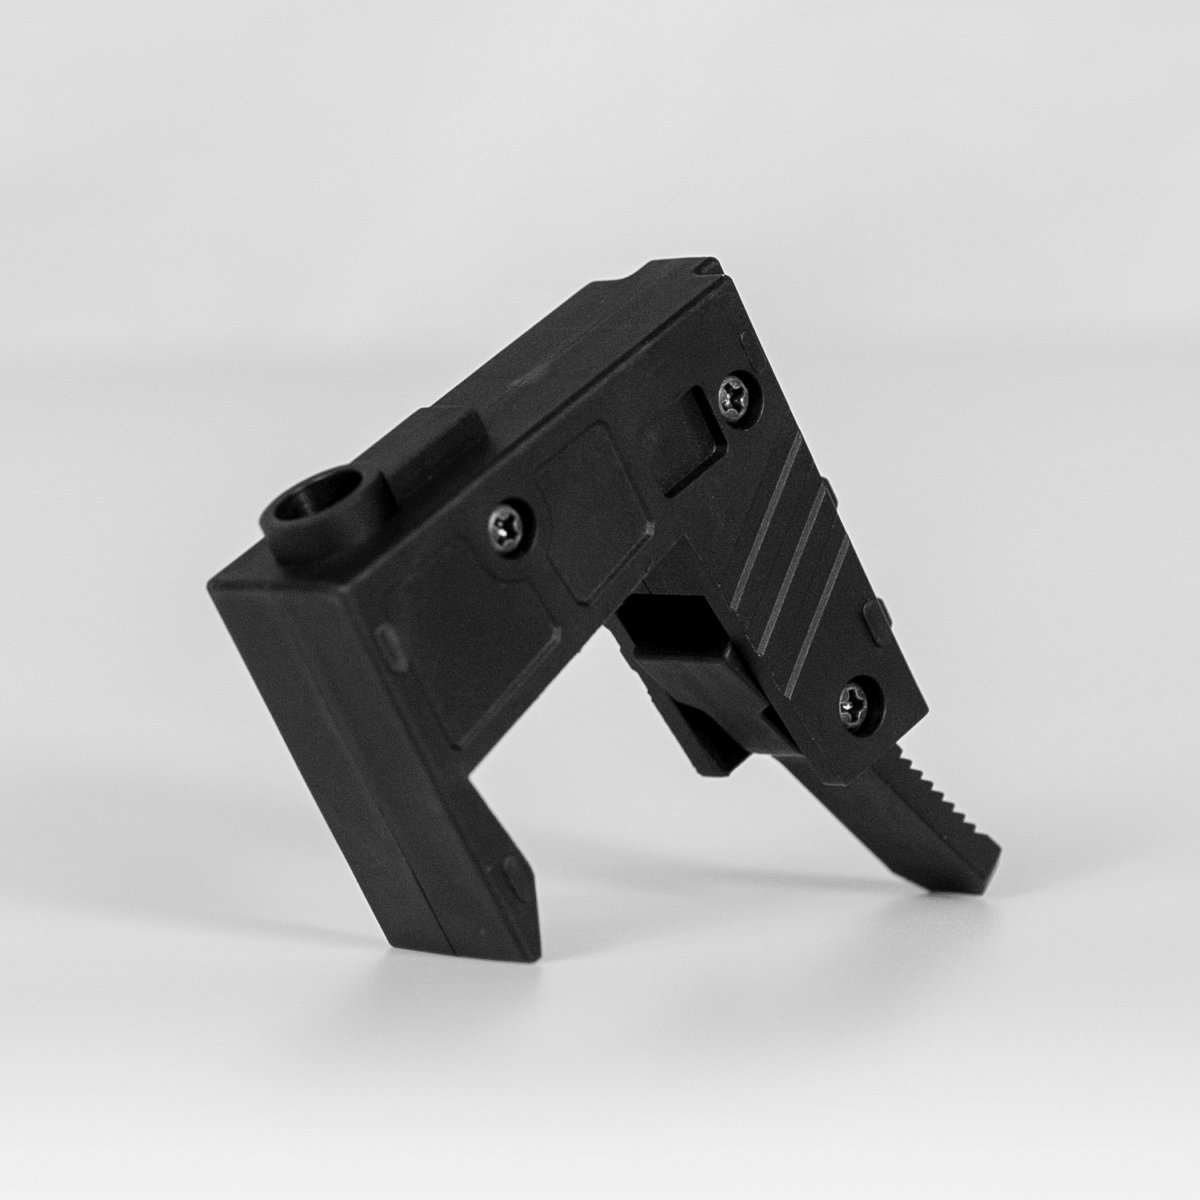 View larger image of Valken SMG Magazine Adapter for ASL Series AEGs